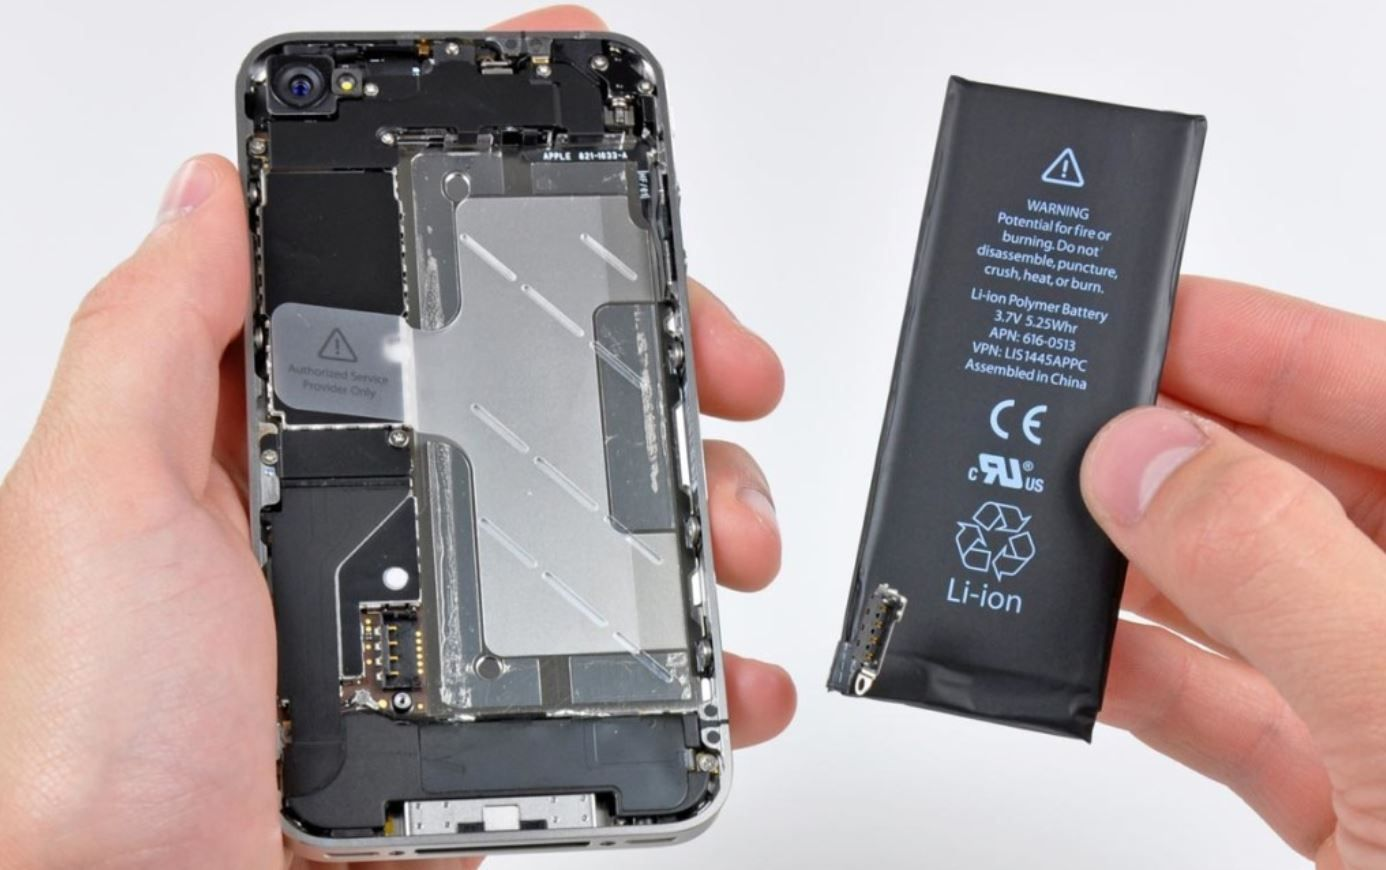 How does Apple check the battery status of your iPhone